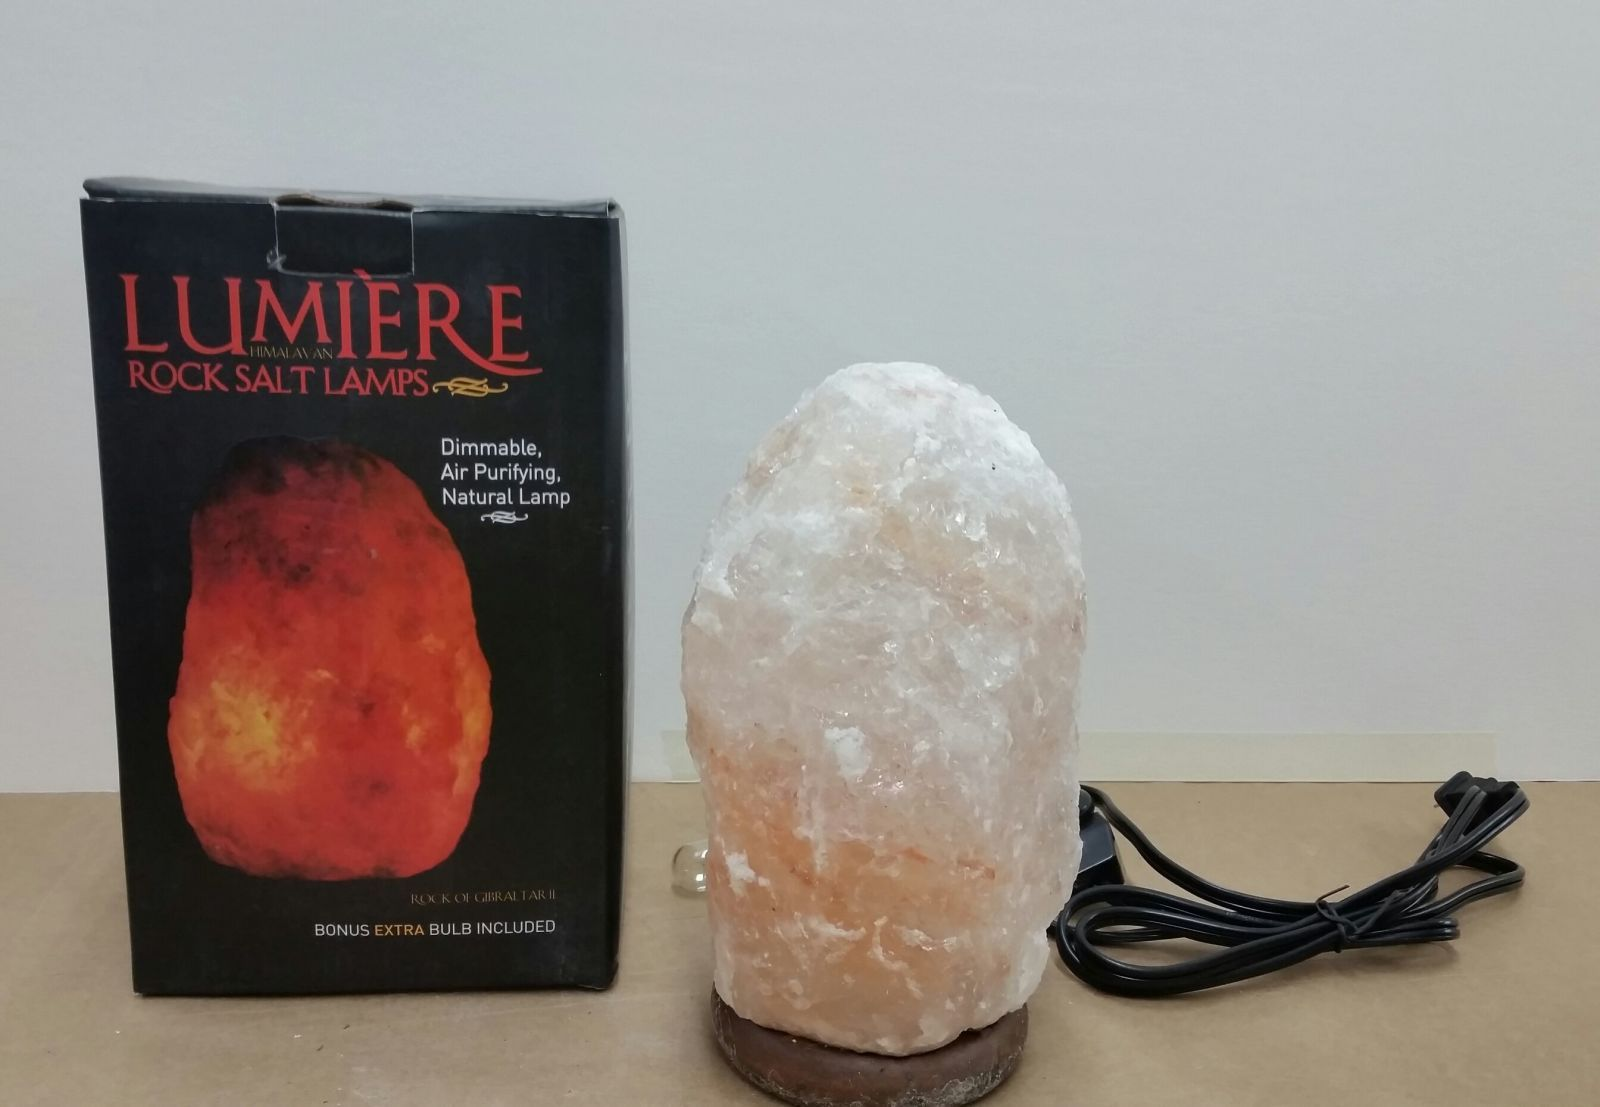 Lumiere Salt Lamp Brilliant Himalayan Rock Salt Lamps Recalled For Fire Electric Shock Risks Decorating Inspiration